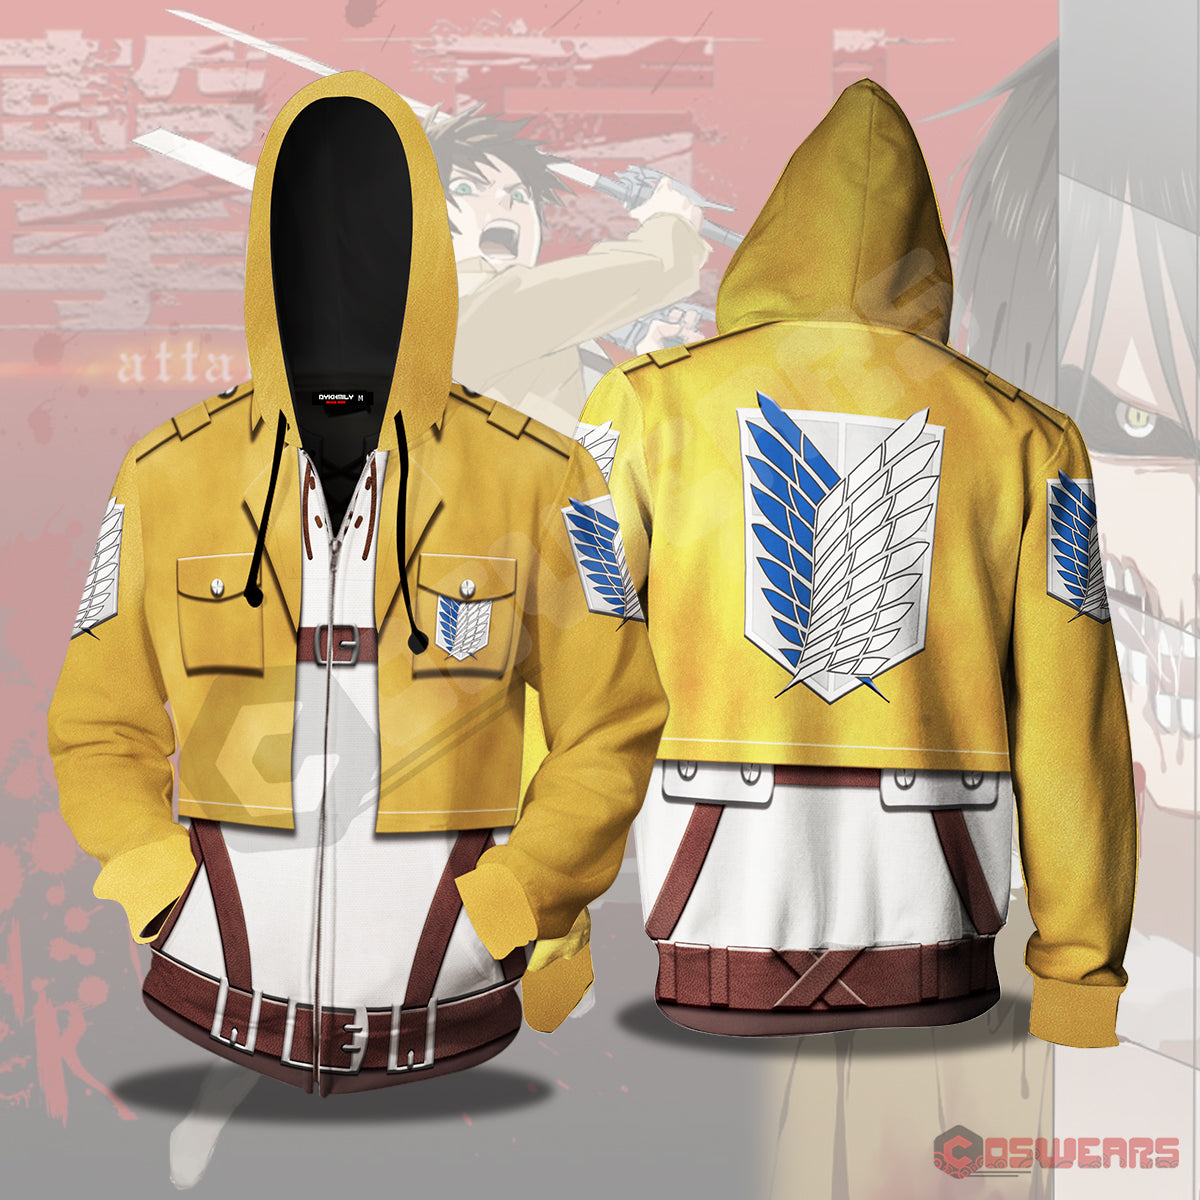 Attack on Titan - Eren Yeagar Inspired Zipped Hoodie